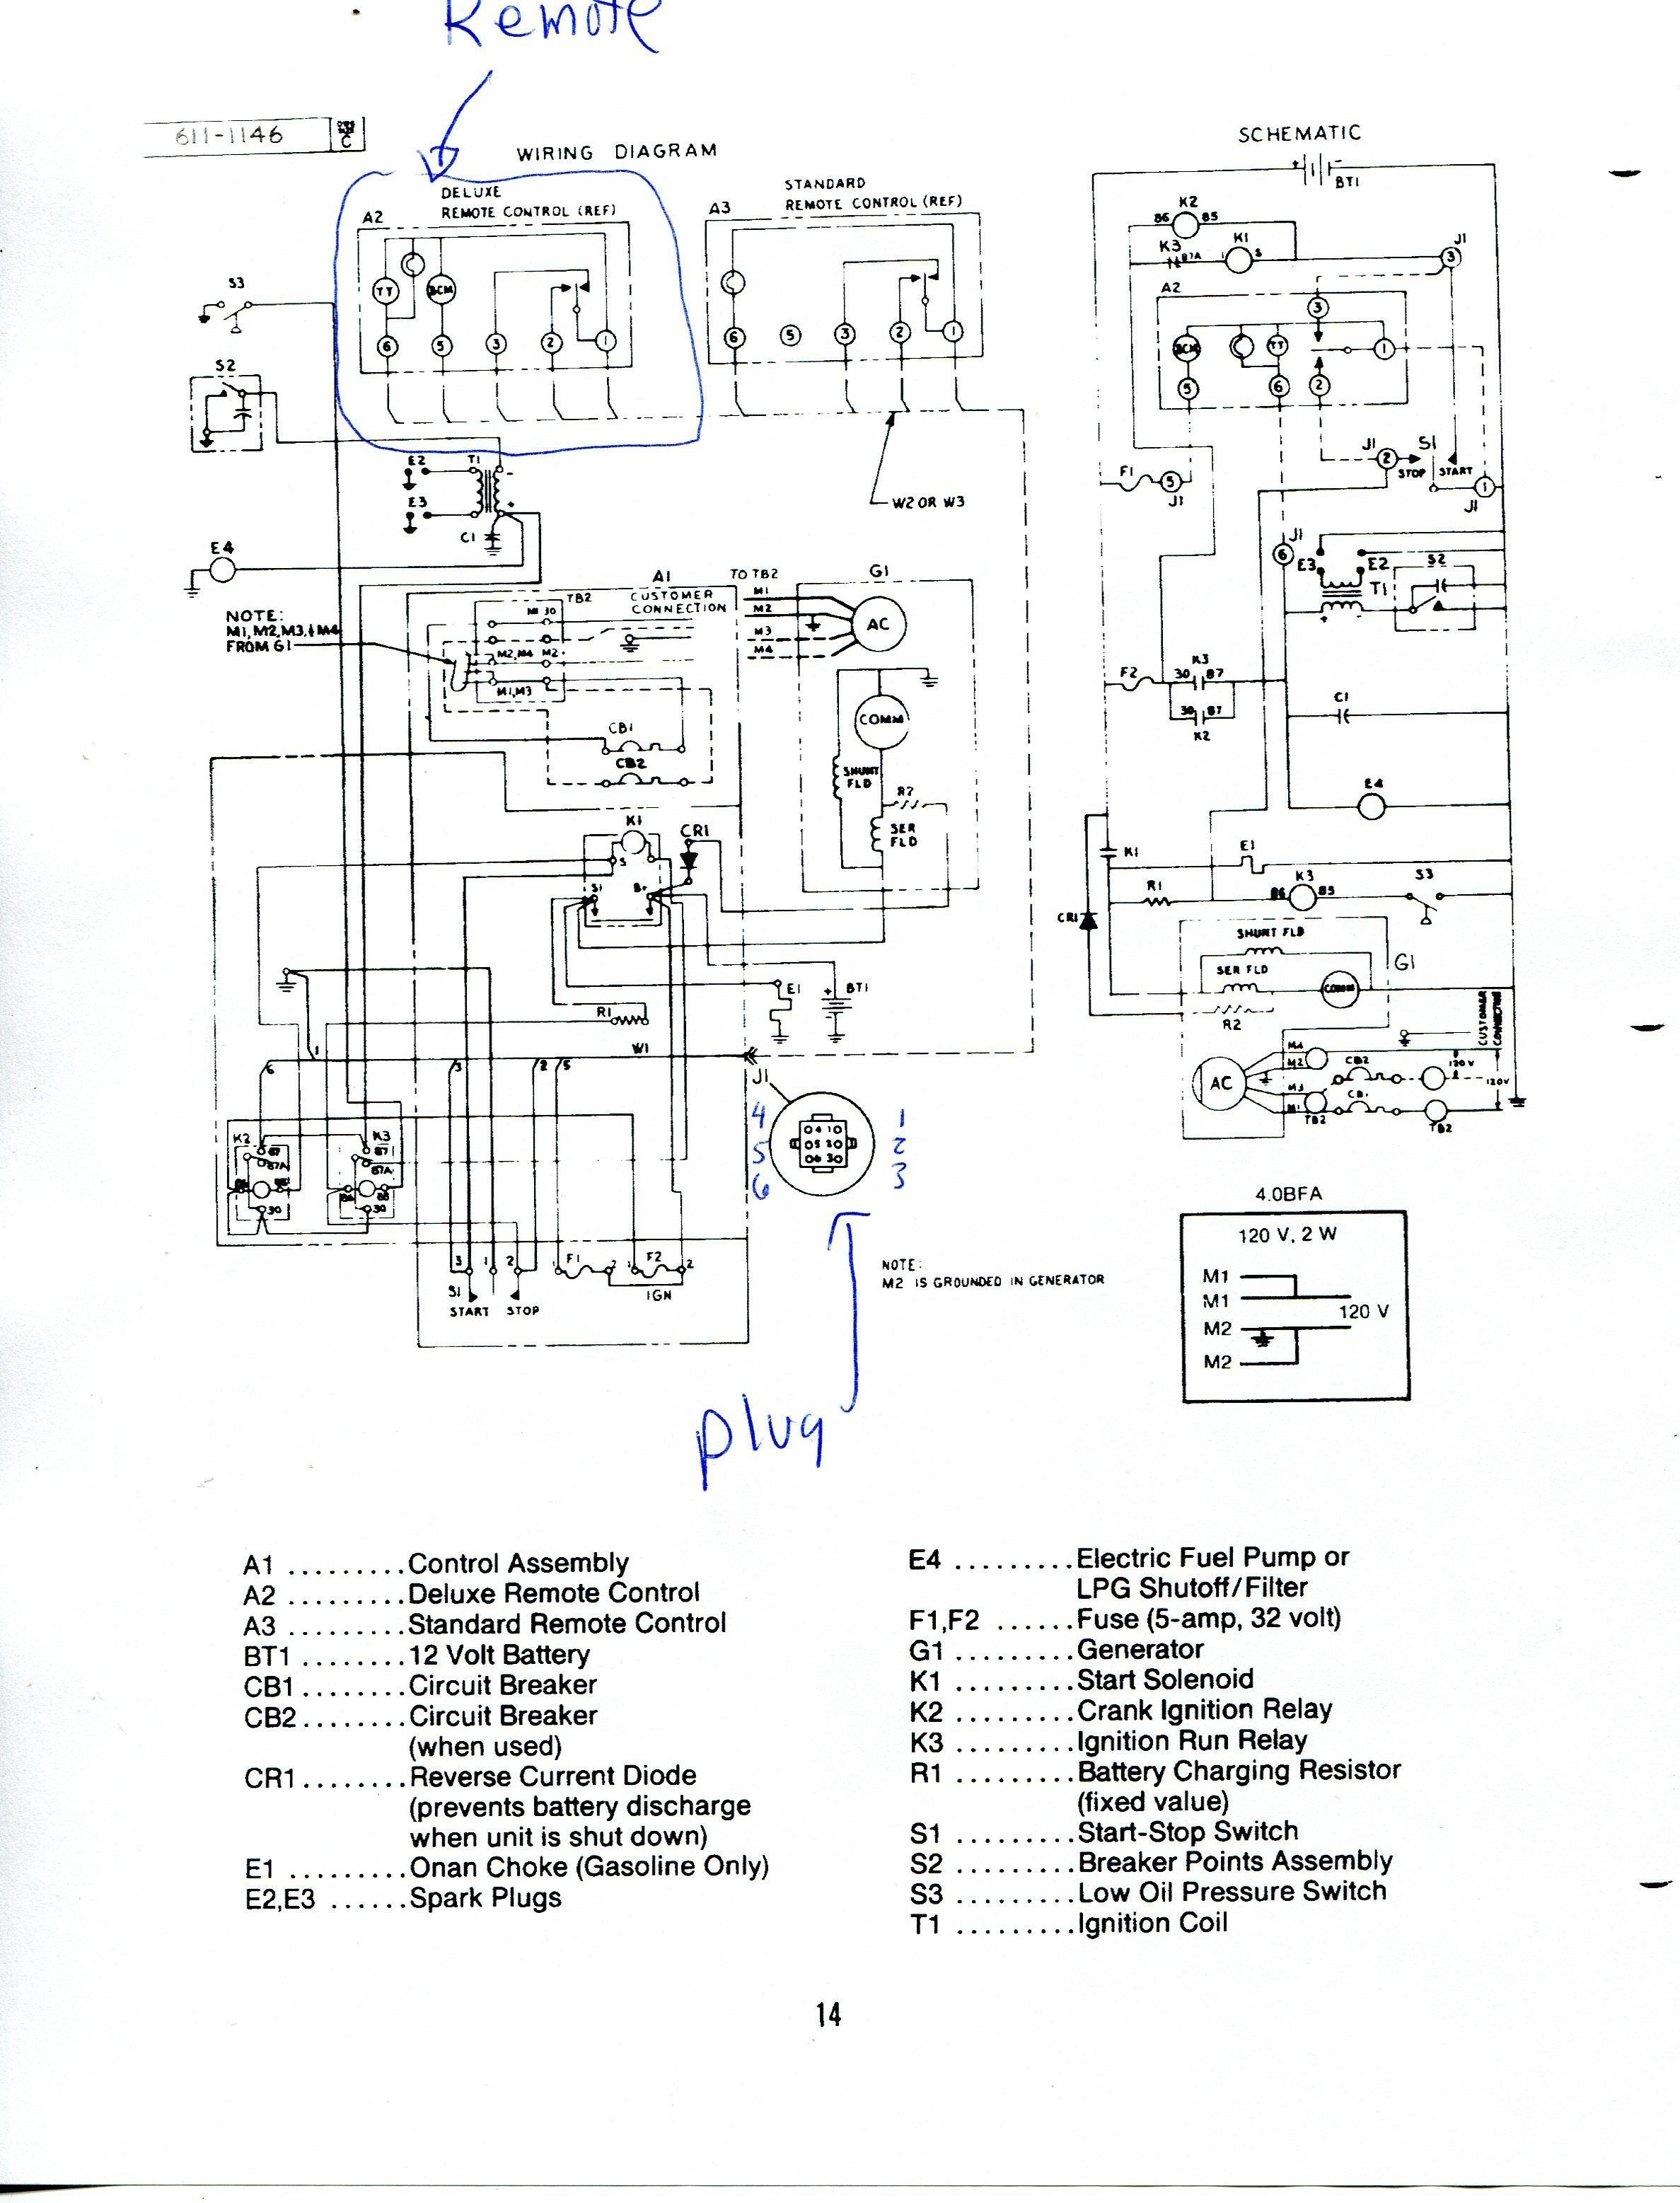 wiring diagram for onan generator Download-Wiring Diagram an Generator Valid Wiring Diagram An Generator Valid Luxury An Generator Electric 16-d